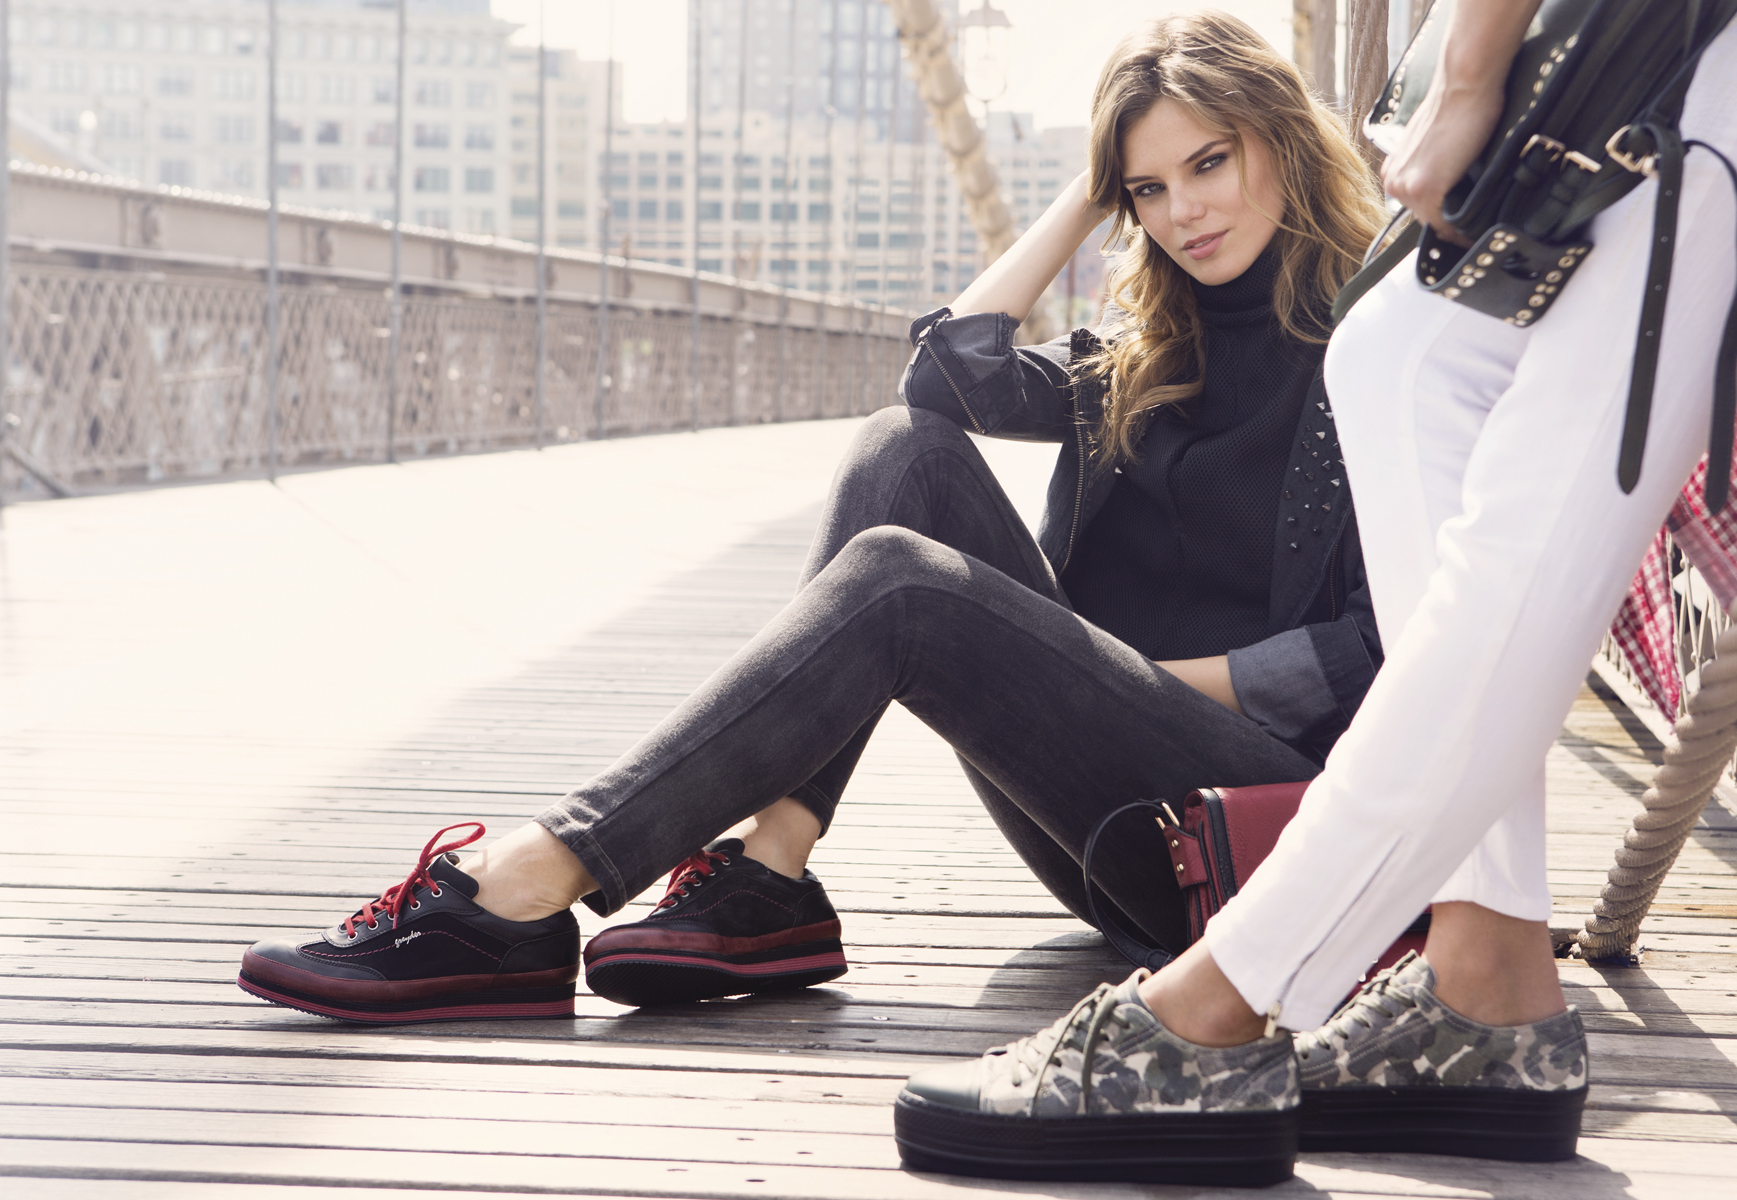 Read This Article Before Jumping into Wholesale Footwear Business